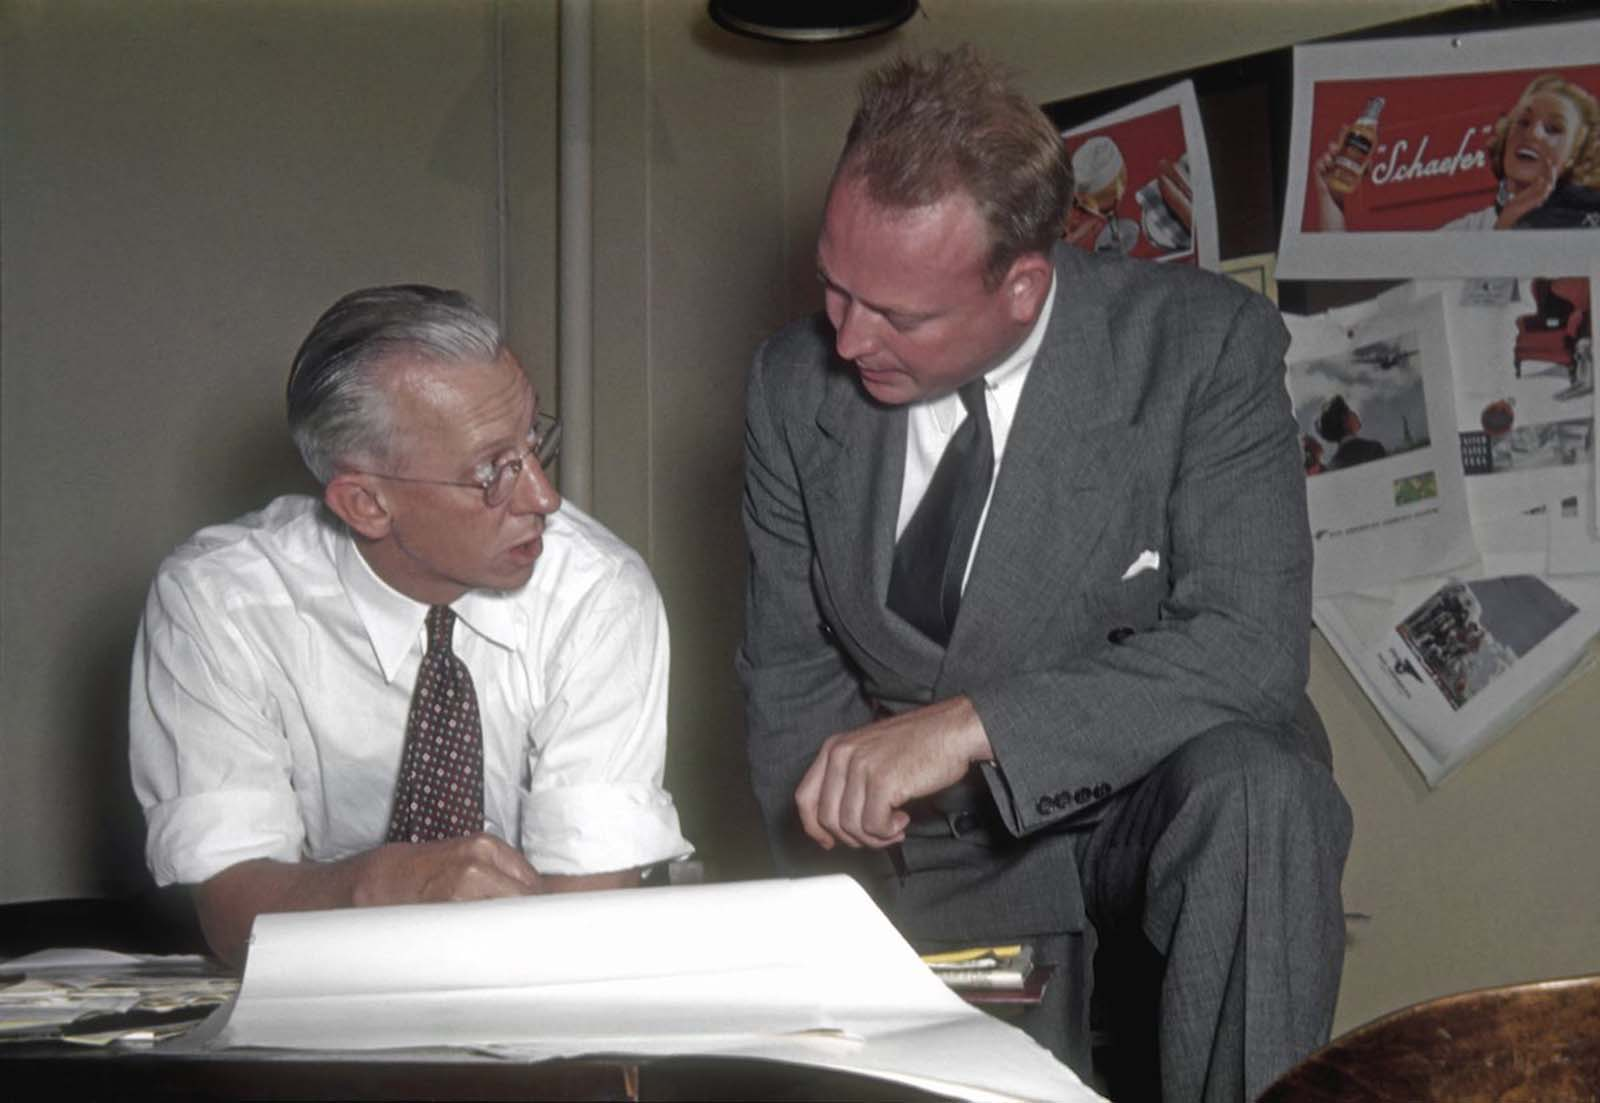 Two ad men discuss a campaign, a pinboard behind them is covered with a range of spreads, including one for Schaefer beer.